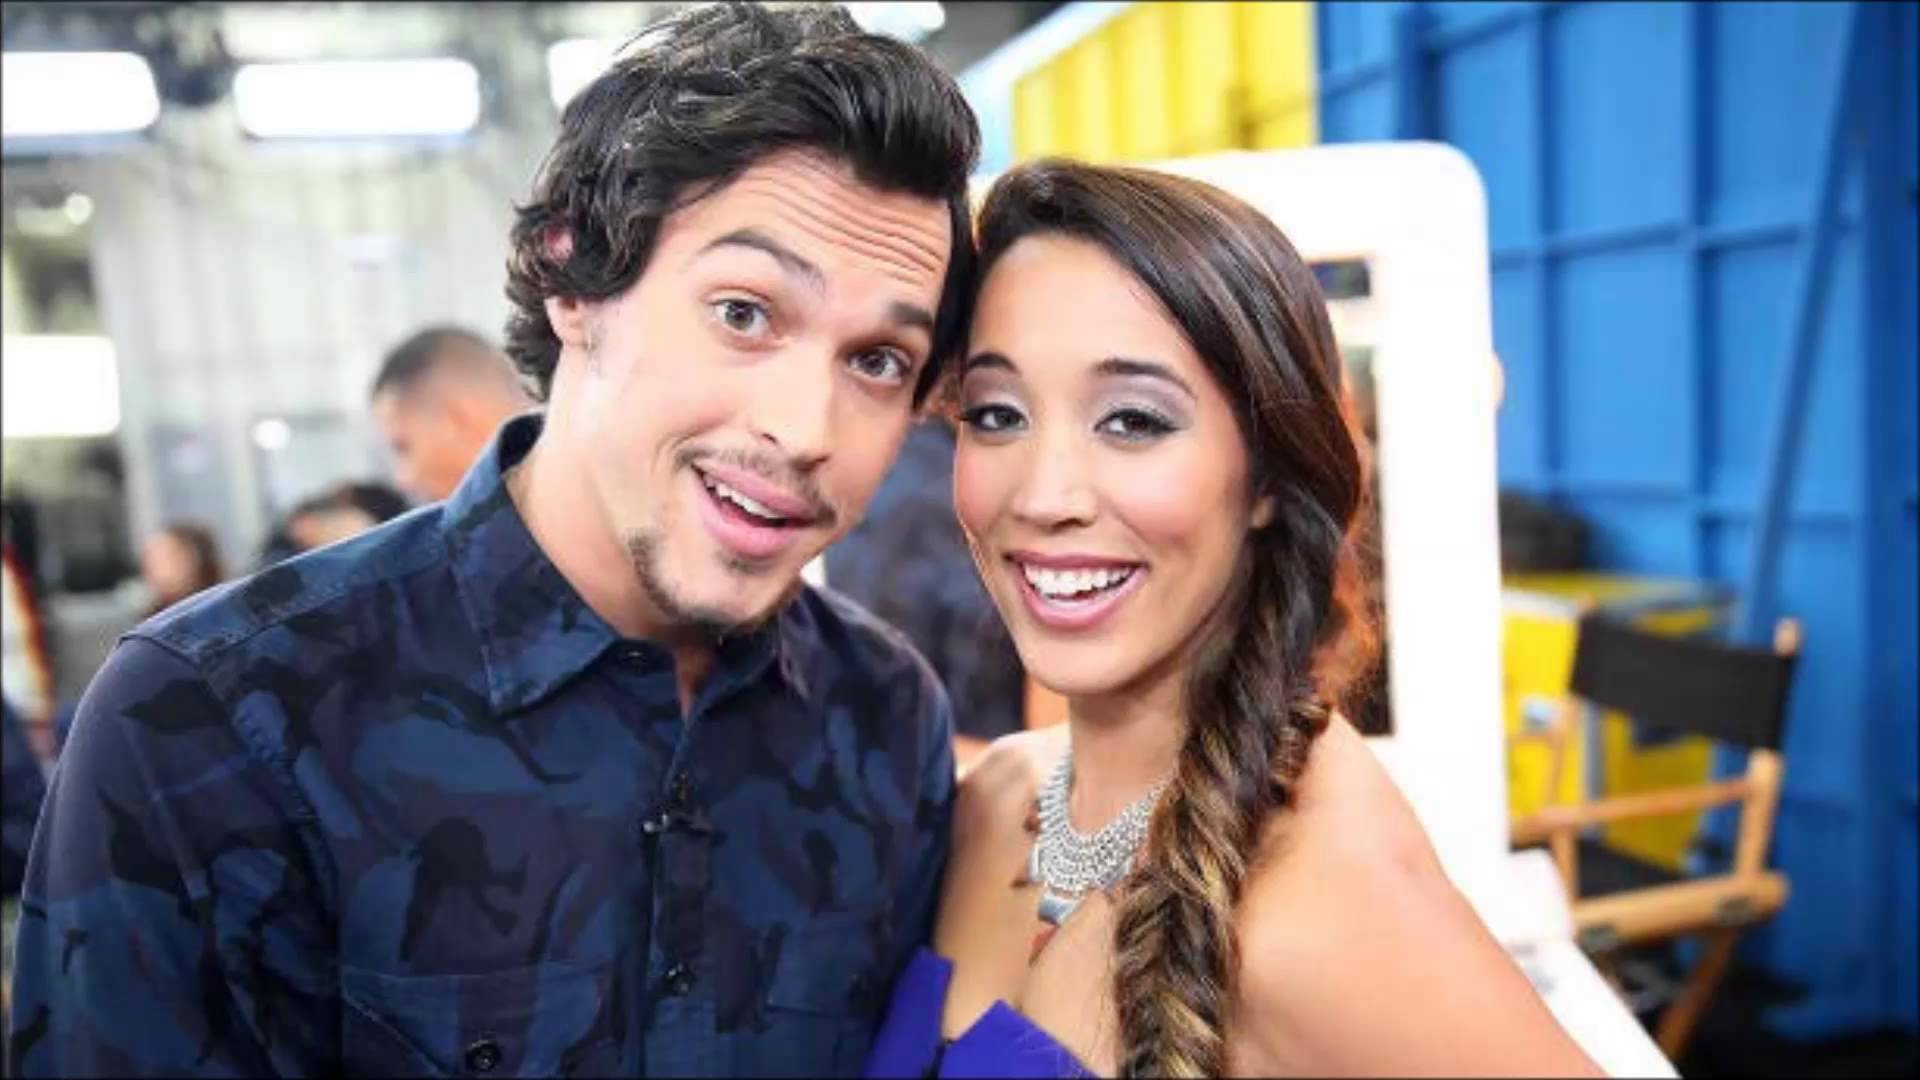 Alex and sierra still dating